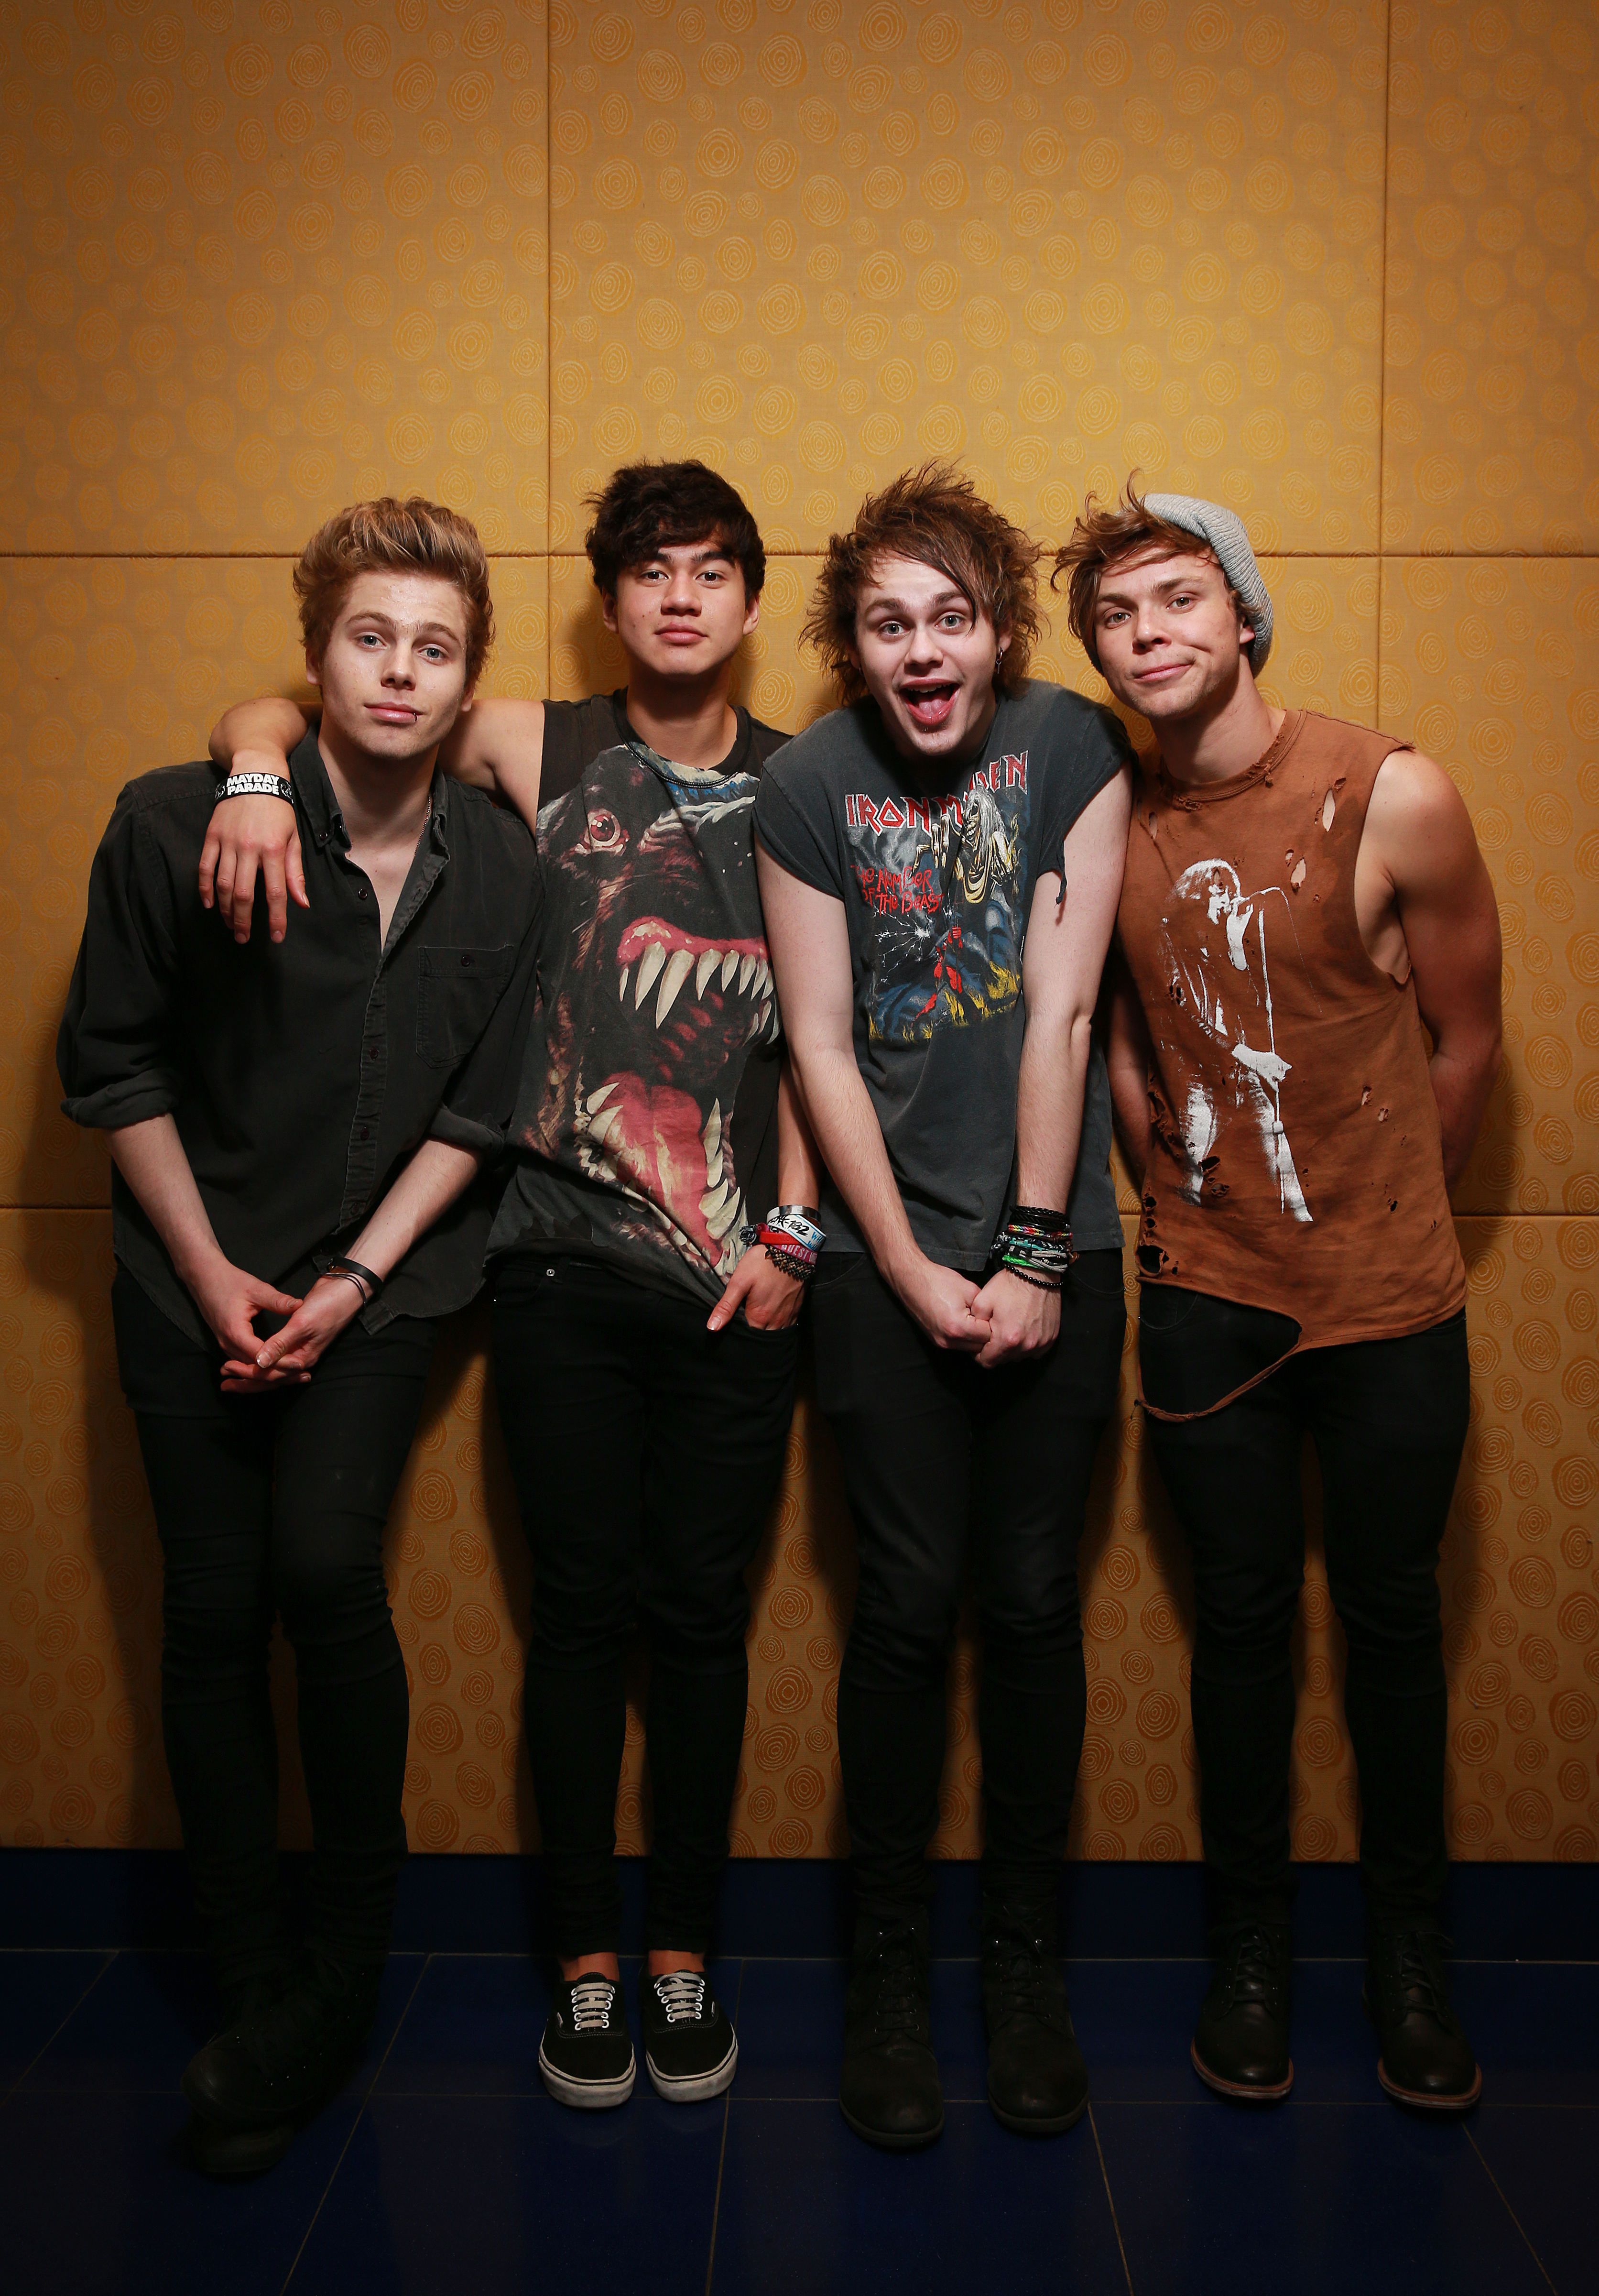 5 Seconds Of Summer Wallpapers High Quality | Download Free